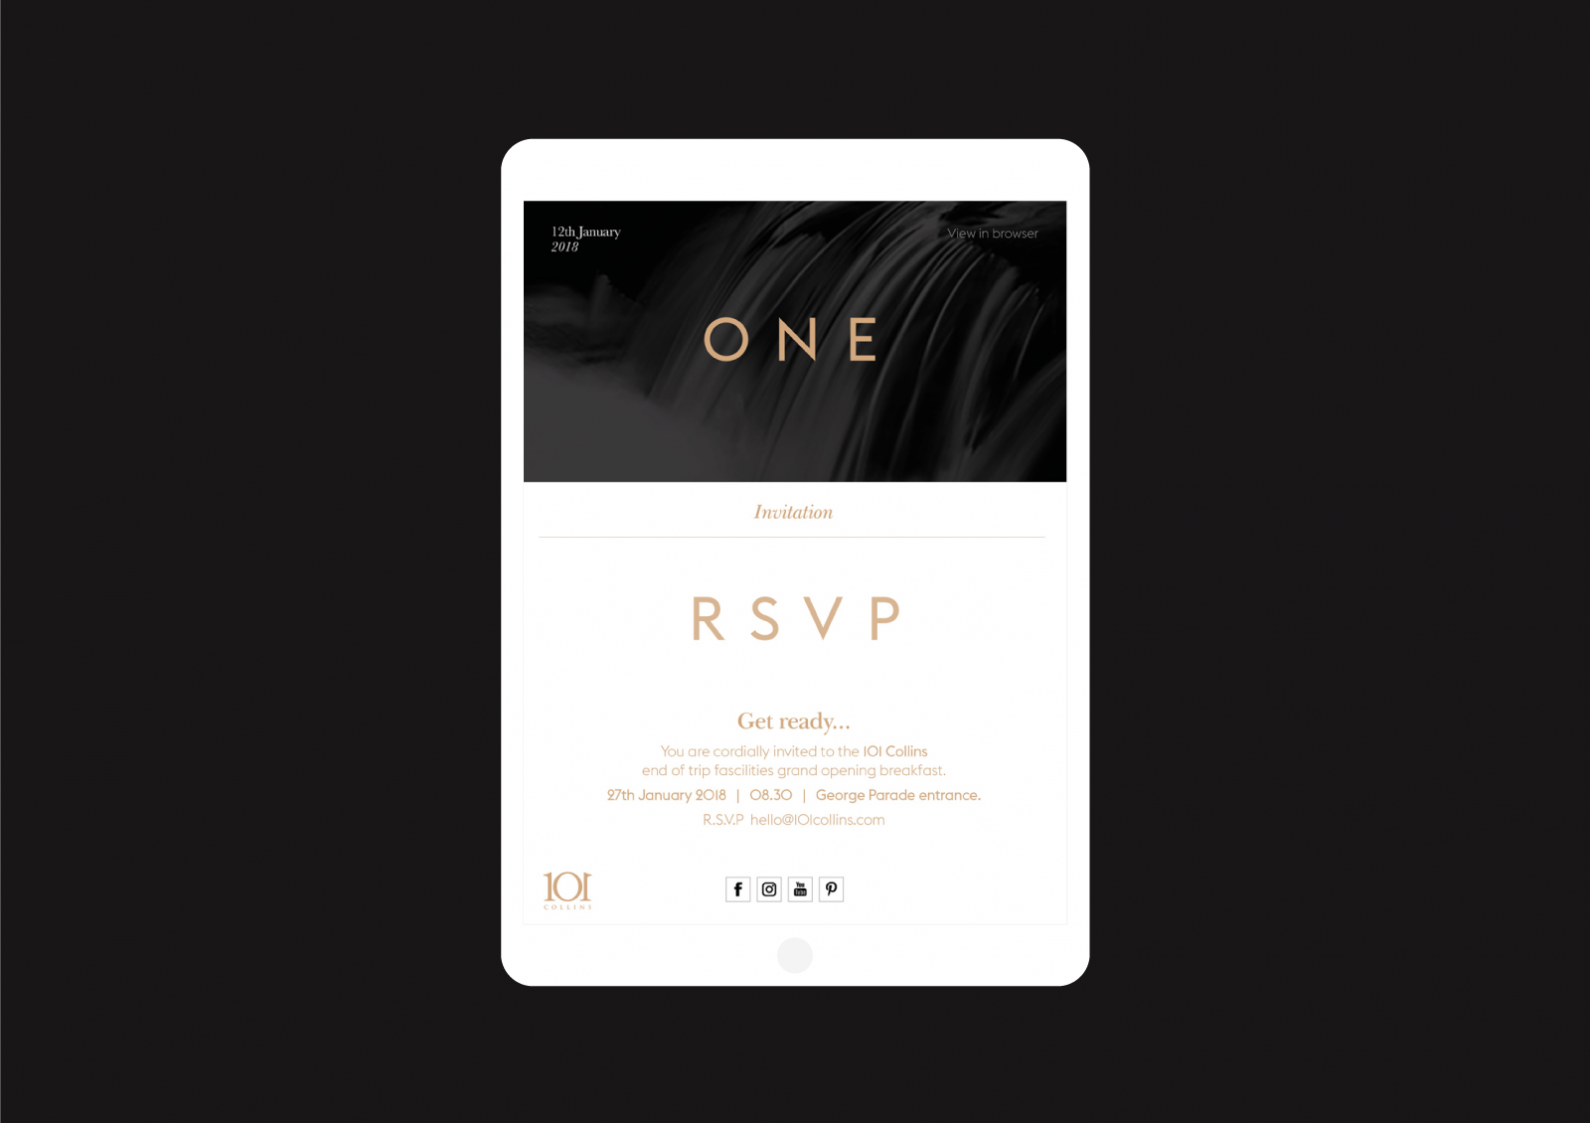 ONE E-Invitation